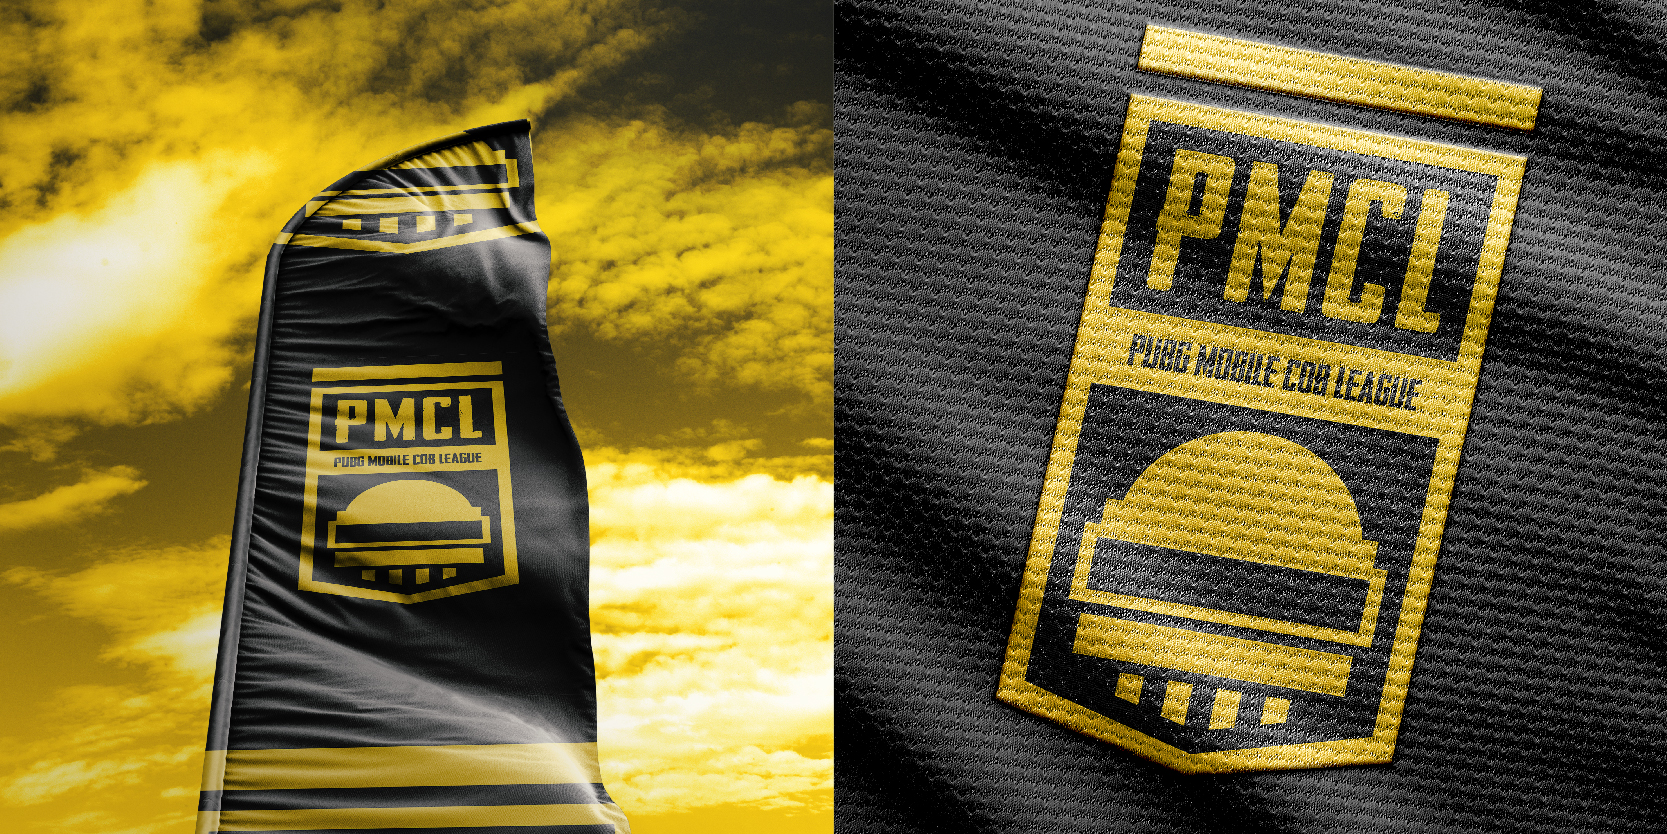 PMCL pubg gaming branding flag design